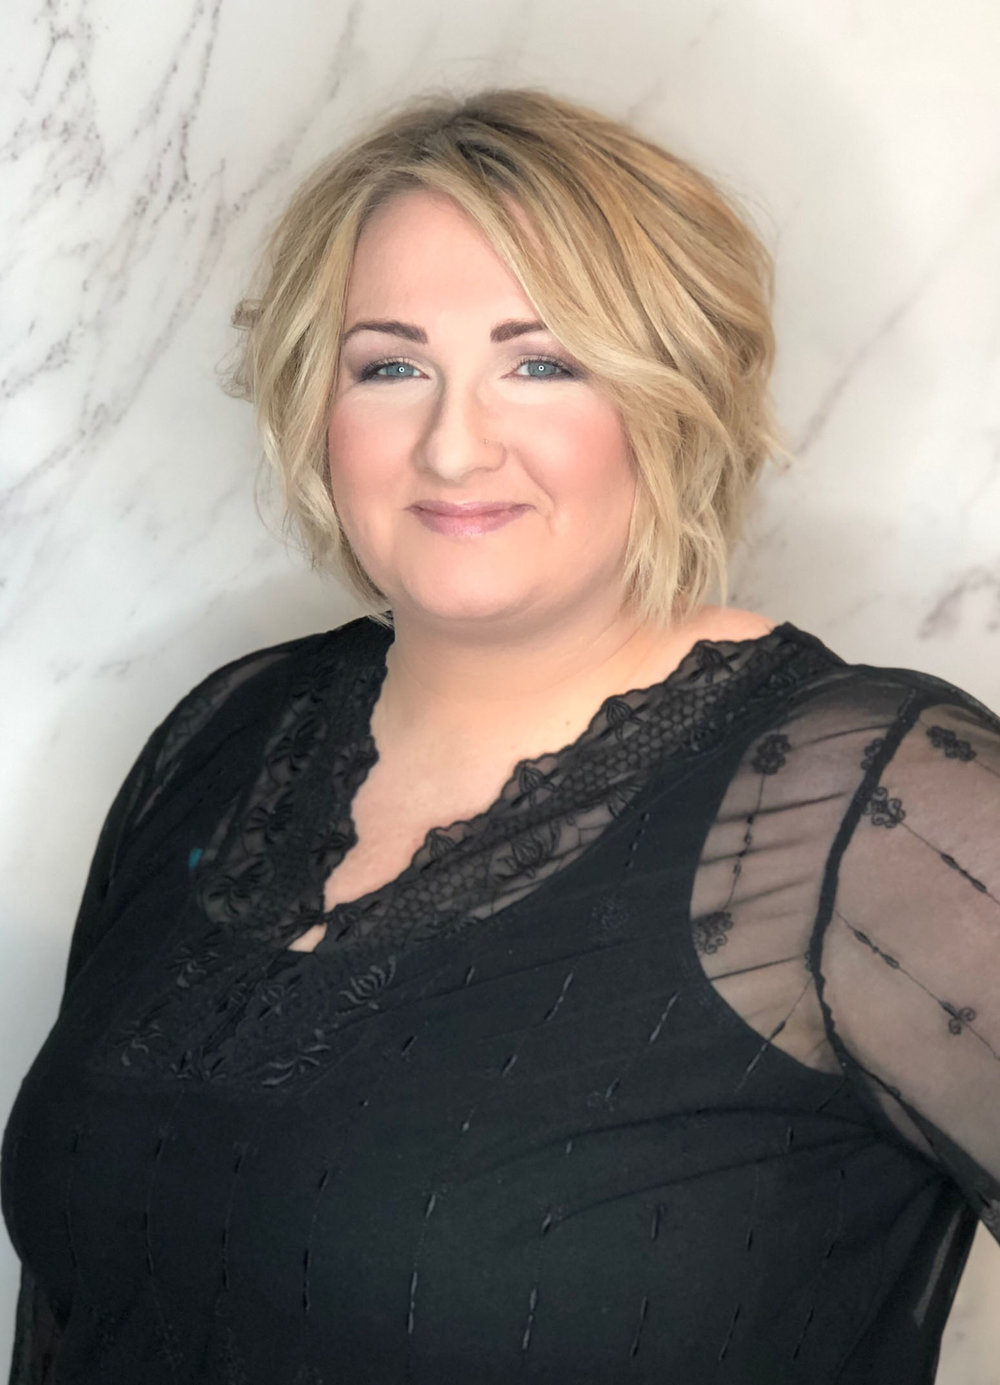 """Heather loves working in an industry that promotes self esteem, beauty and creativity. She's experienced to transform hair into a work of art, while maintaining functional and easy to manage styles. She's never known a client that doesn't become a friend and looks forward to meeting you to discuss how to feel your best and conquer your hair """"fears."""""""